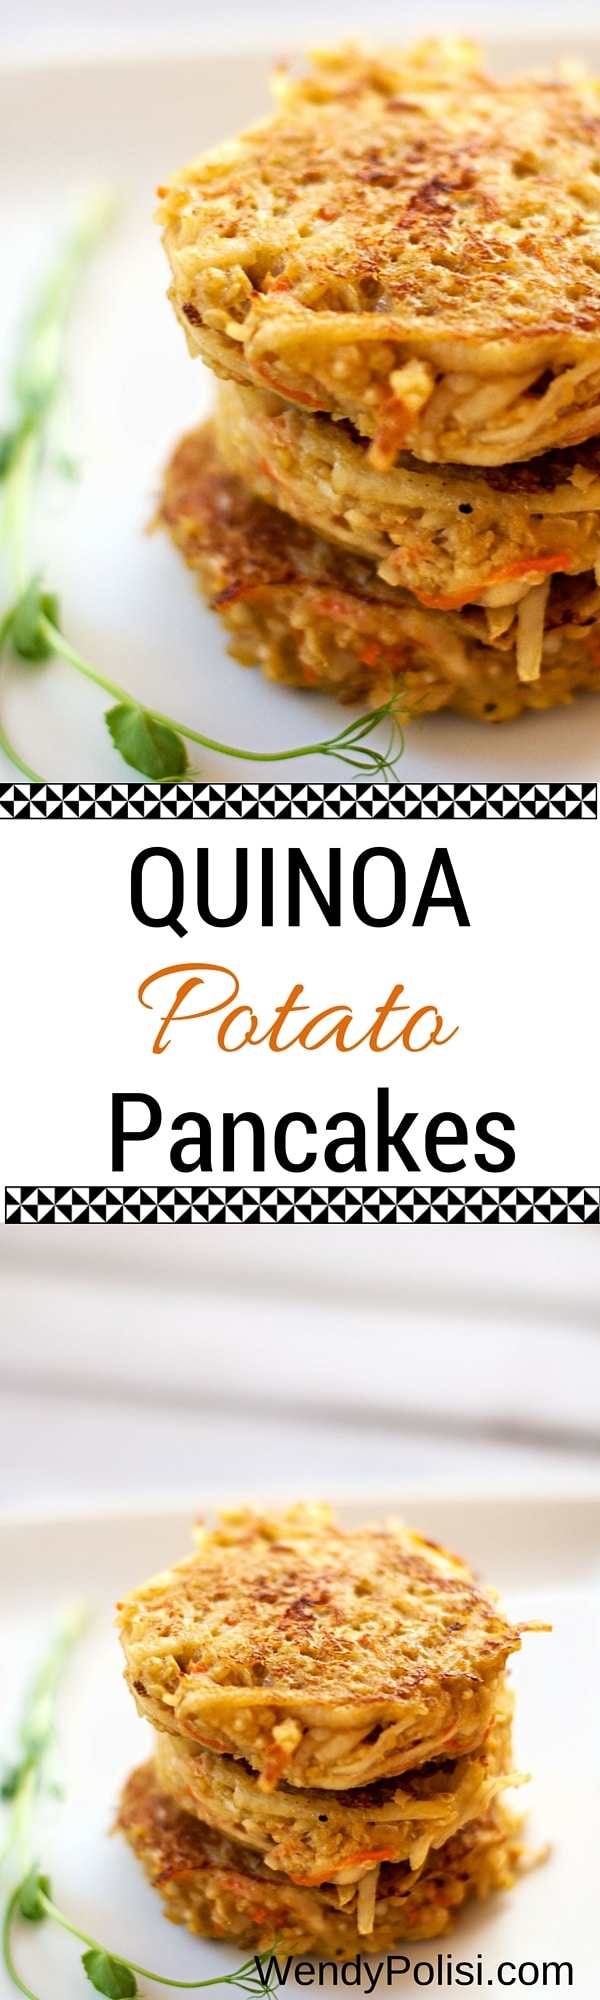 Quinoa Potato Pancakes - WendyPolisi.com - This healthy recipe is perfect for breakfast! With quinoa, potatoes and eggs you've got the perfect mix of protein and carbohydrates! Vegetarian with vegan option.